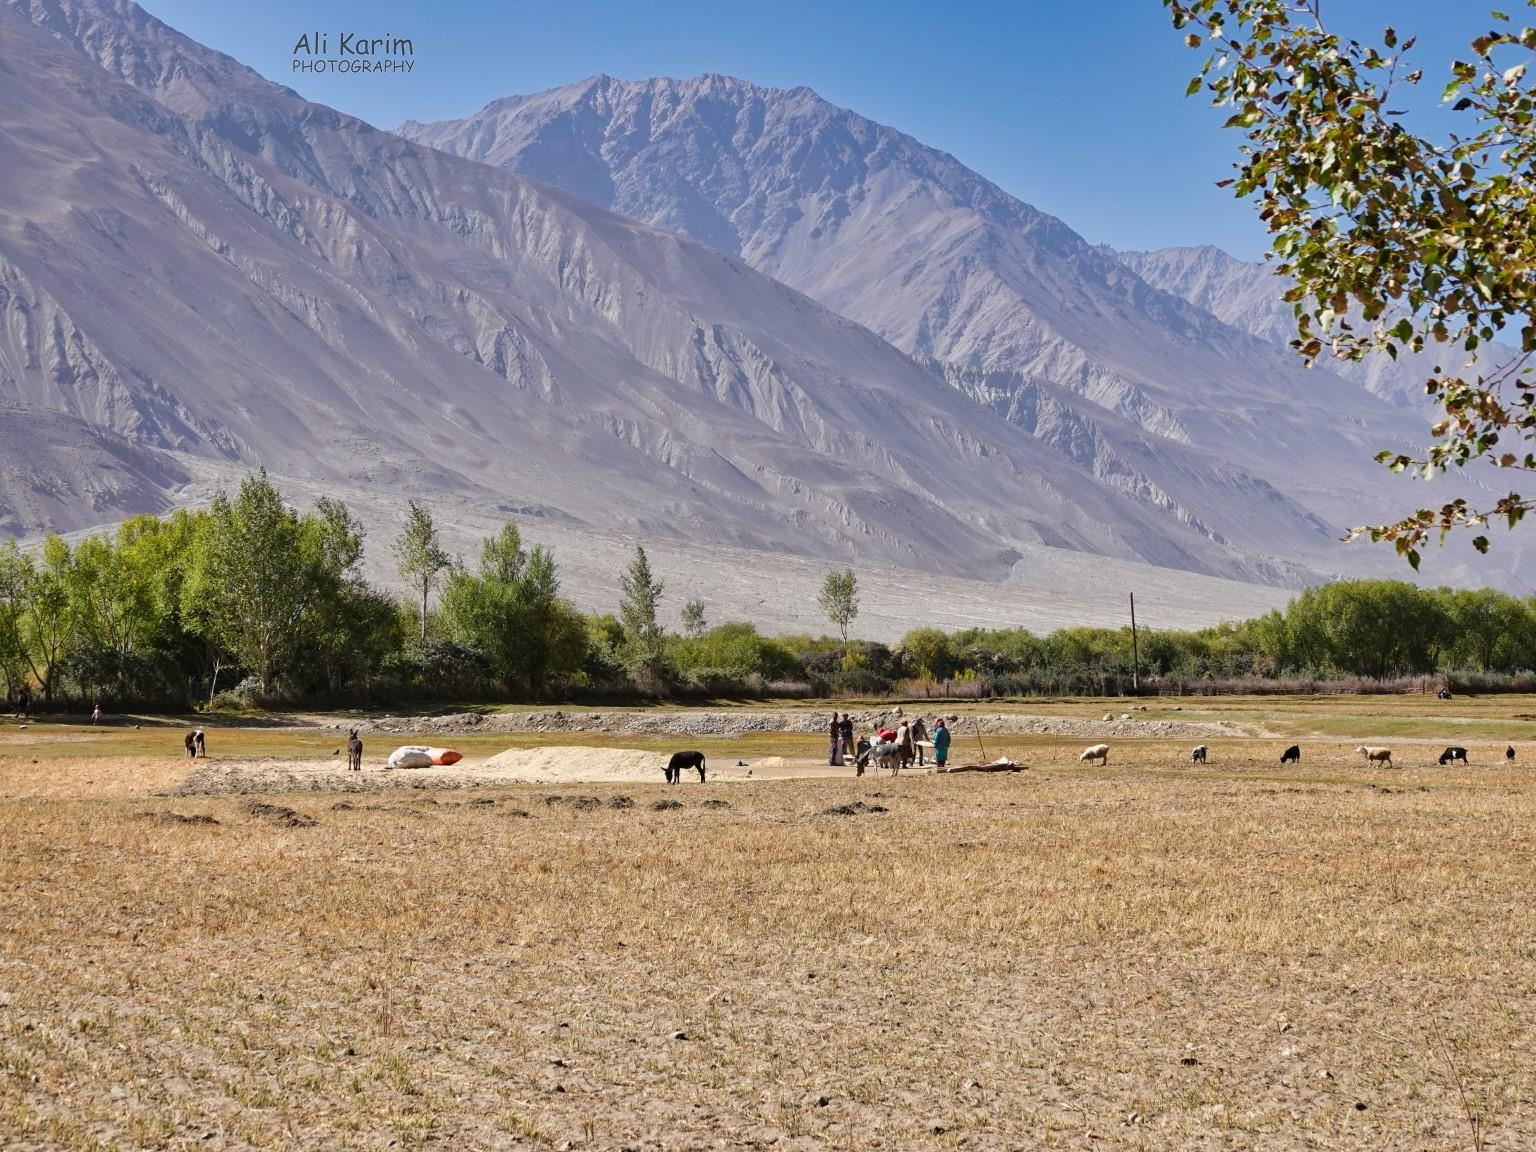 Langar, Bulunkul Tajikistan, Harvest time, with majestic mountains in the back